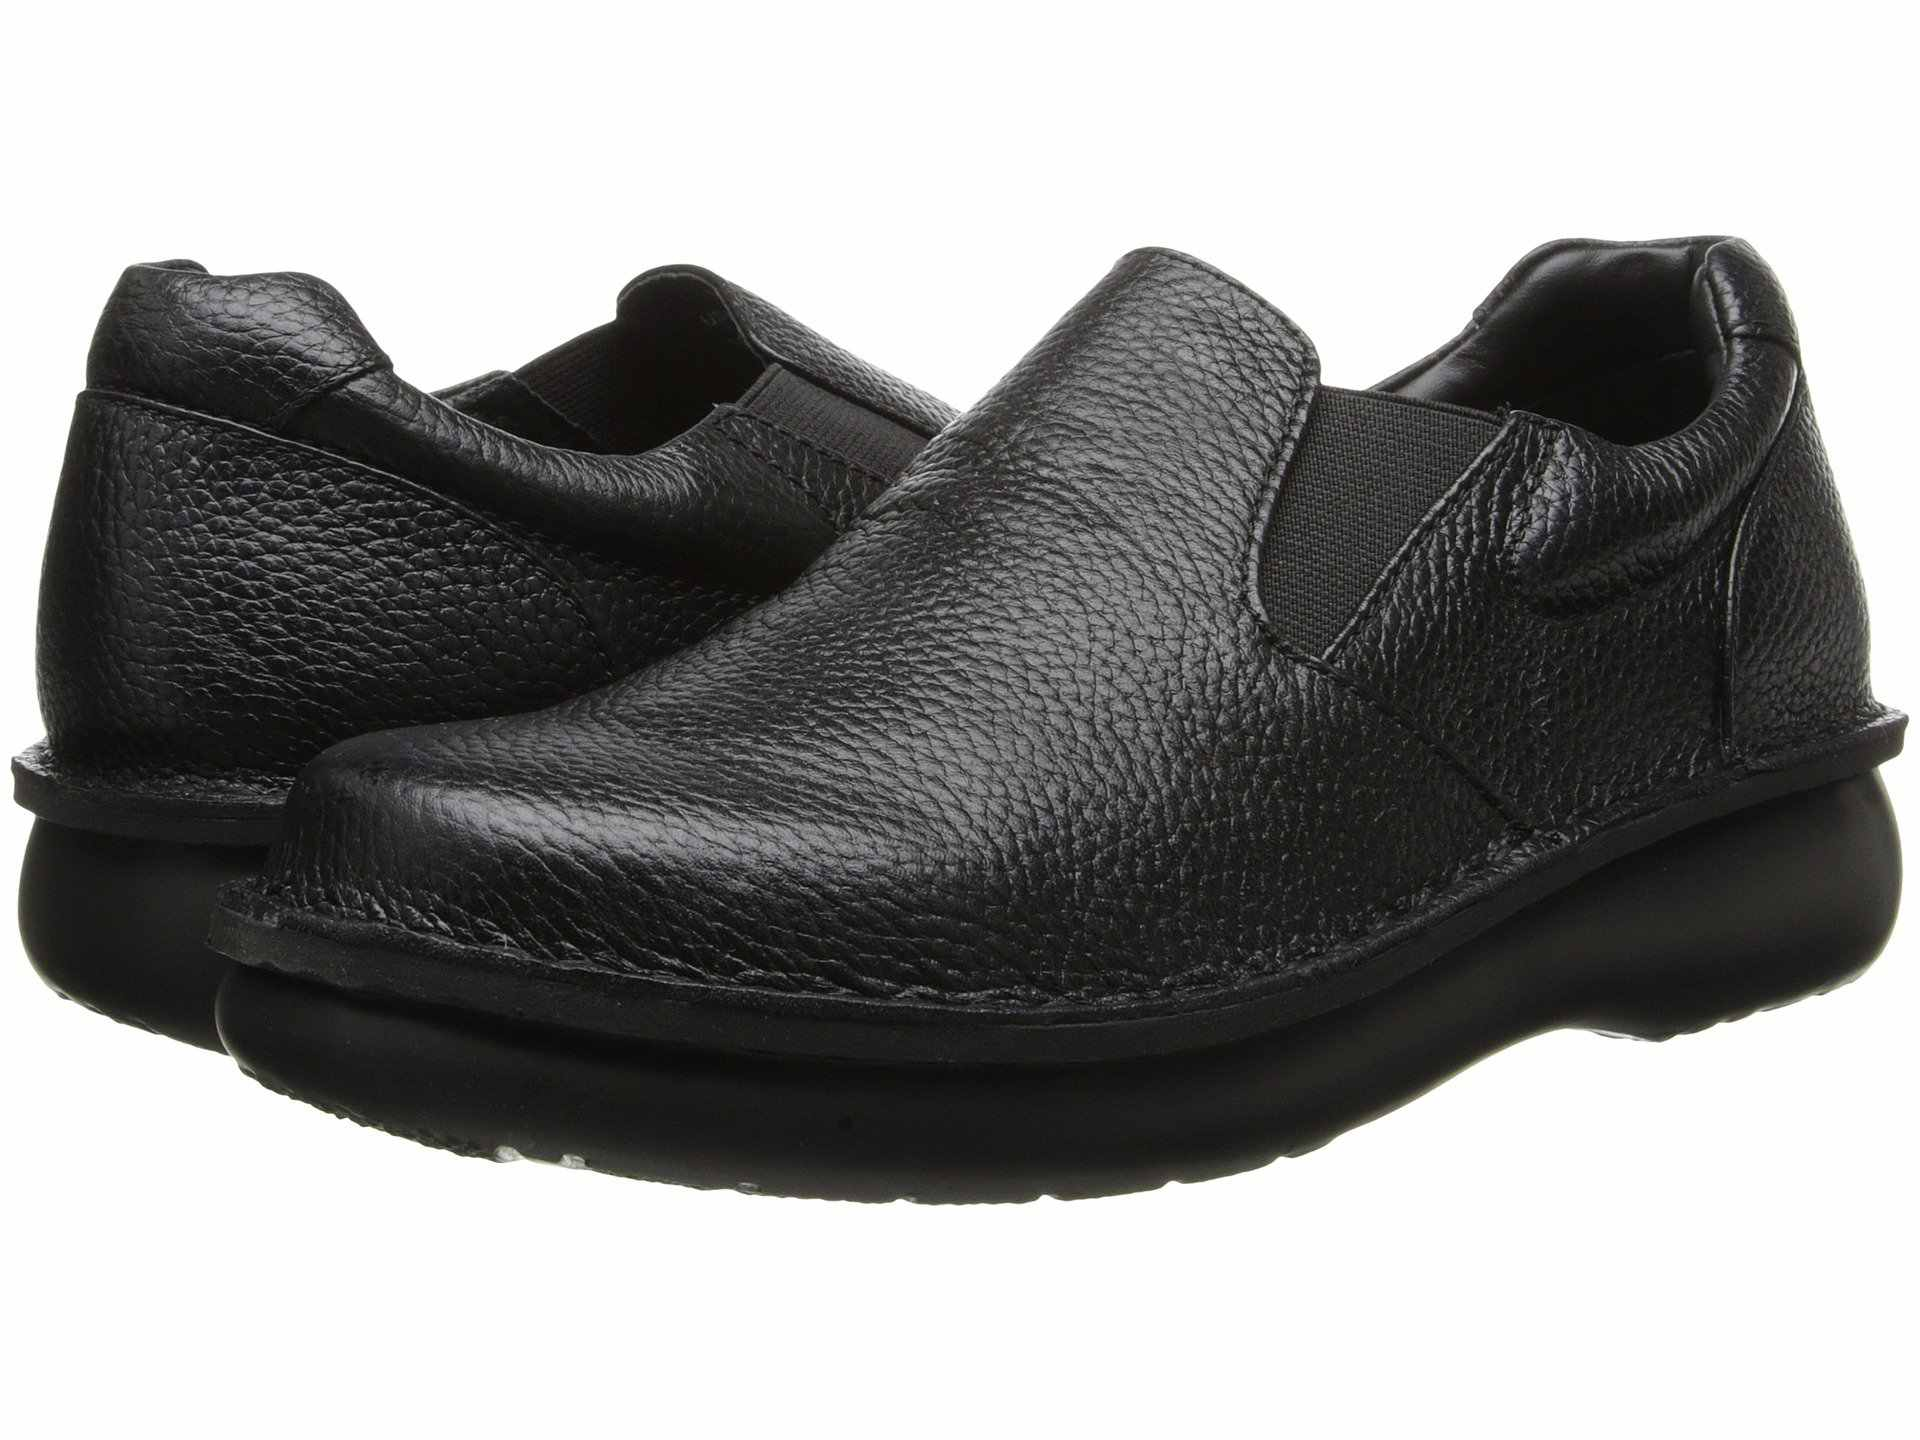 Womens Dress Shoes Good For Bunions